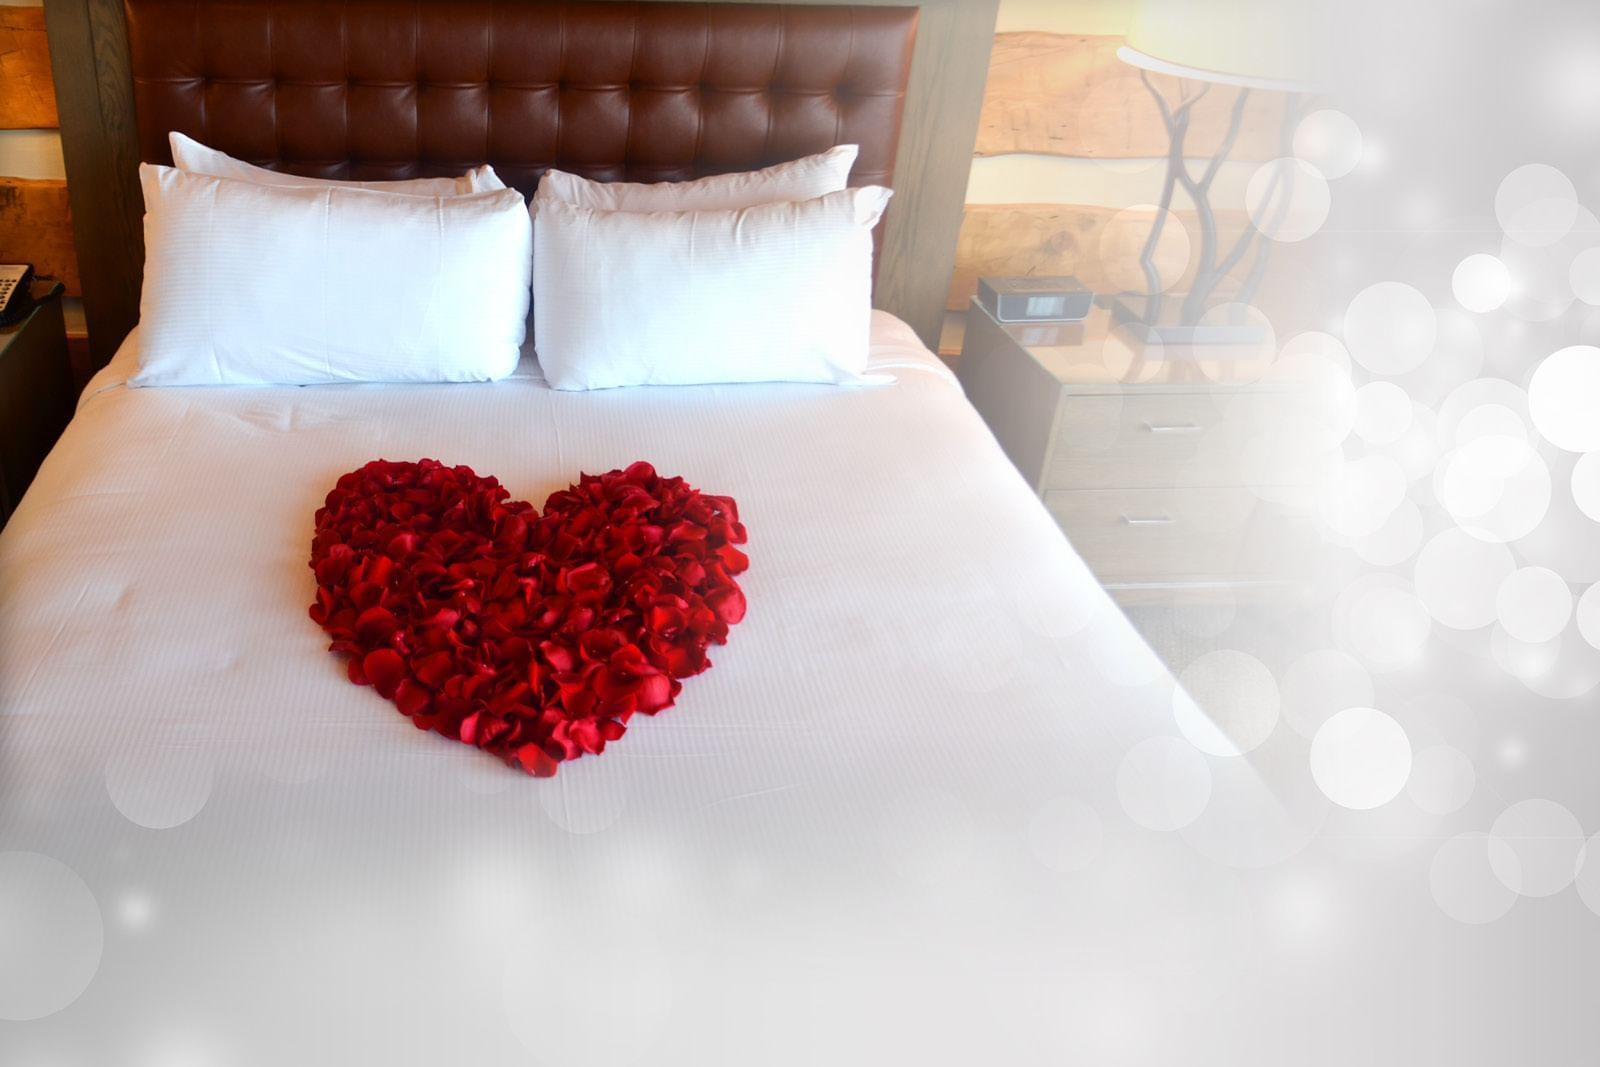 A queen size bed with a heart made of roses on it